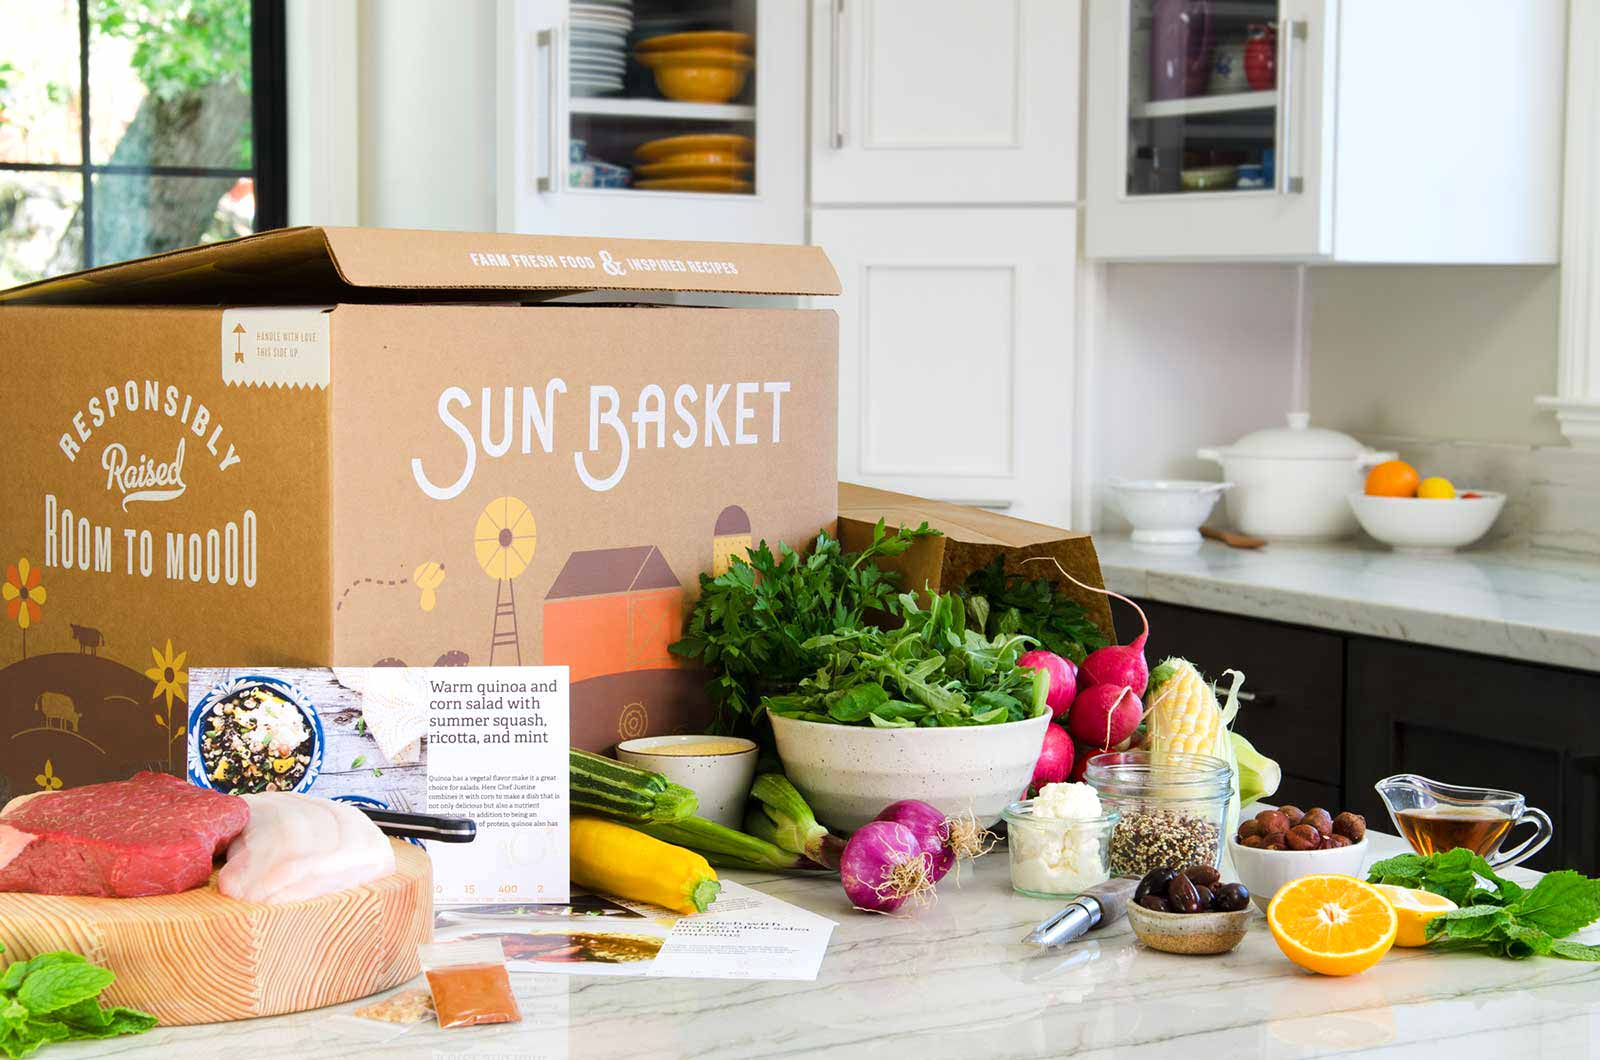 17 Meal Subscription Boxes That Make Cooking at Home Easier Than Ever